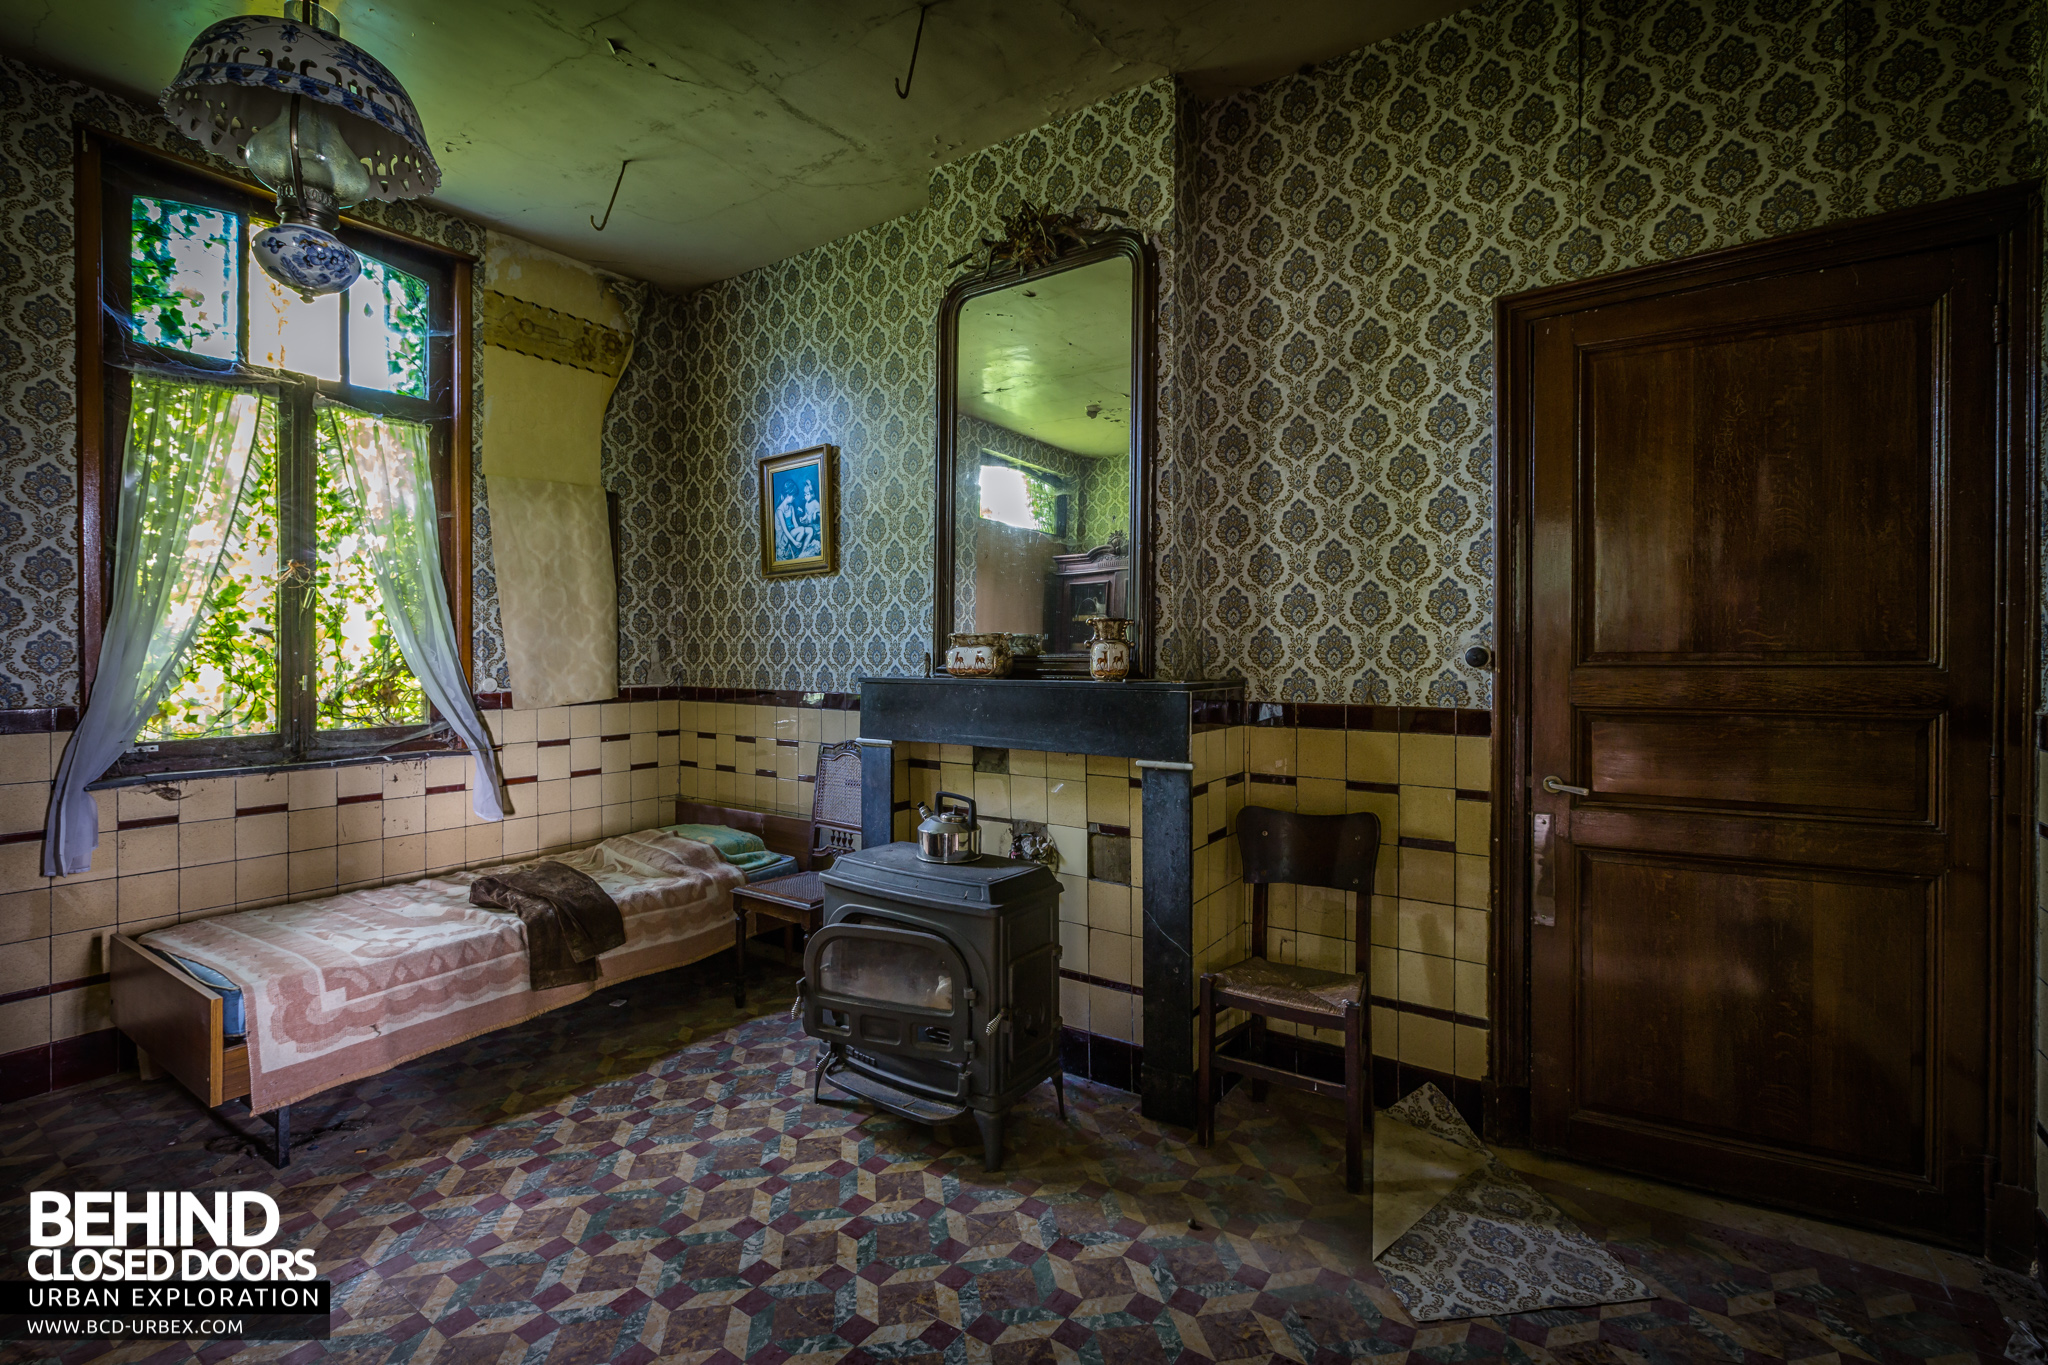 maison gustaaf abandoned house belgium urbex behind. Black Bedroom Furniture Sets. Home Design Ideas